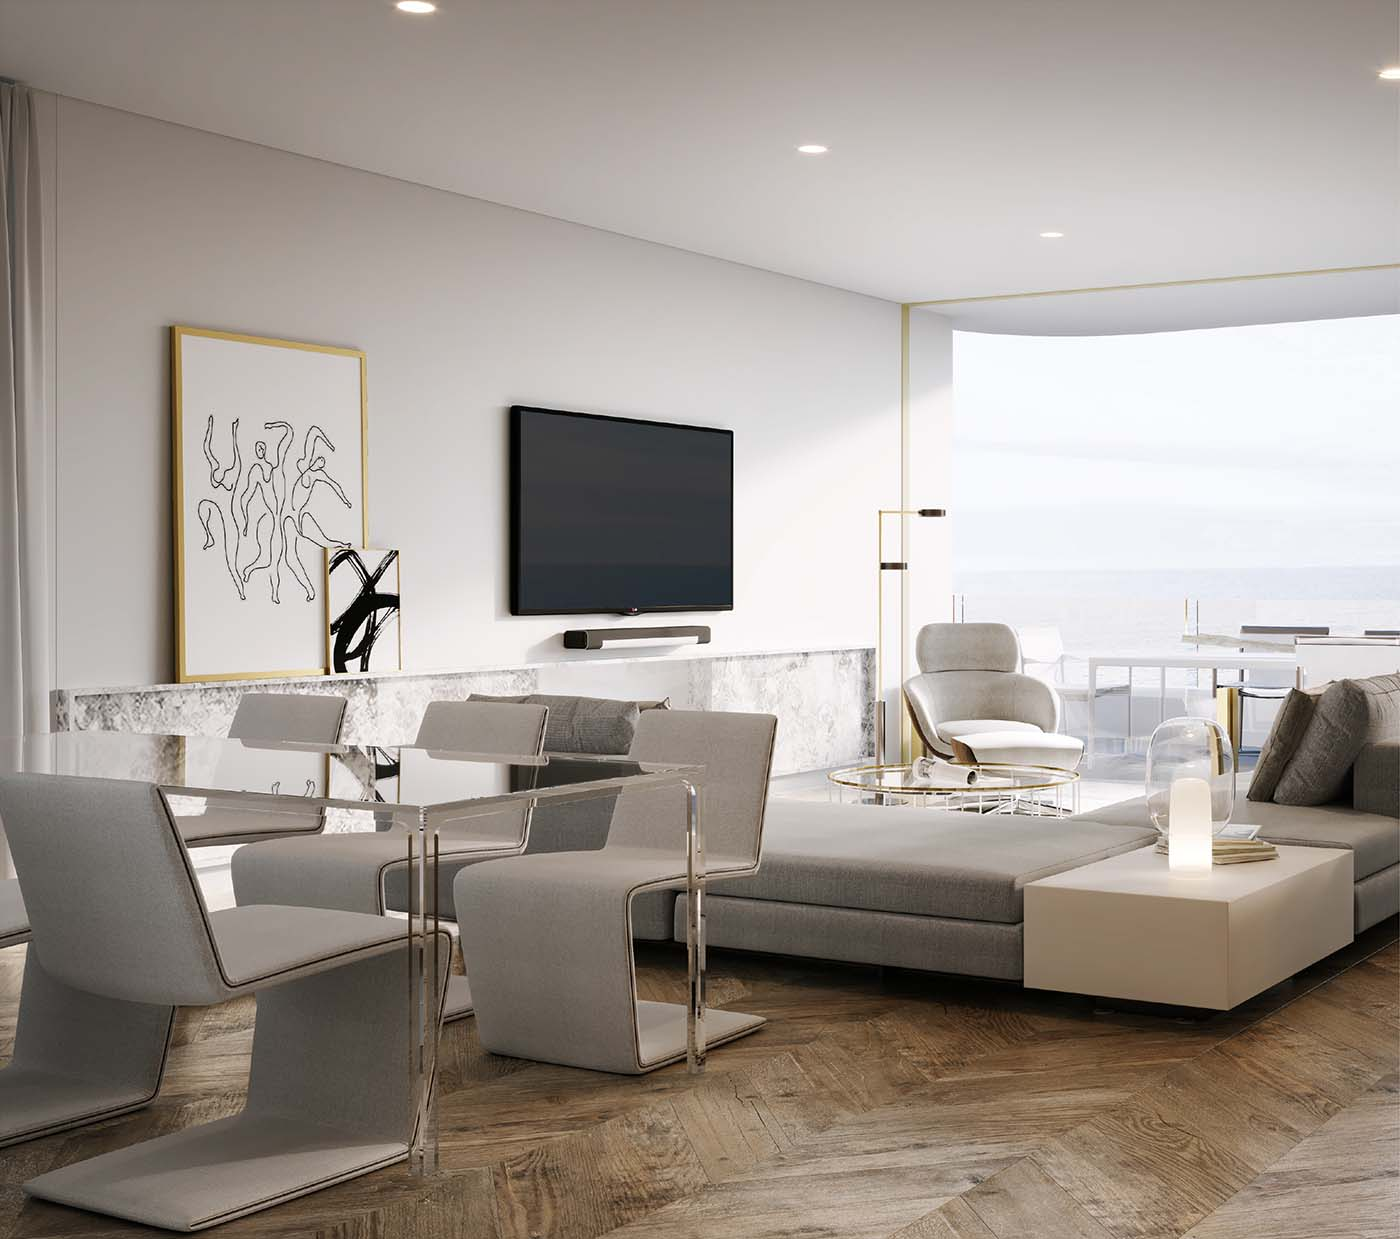 living room with big living area made with neutral materials